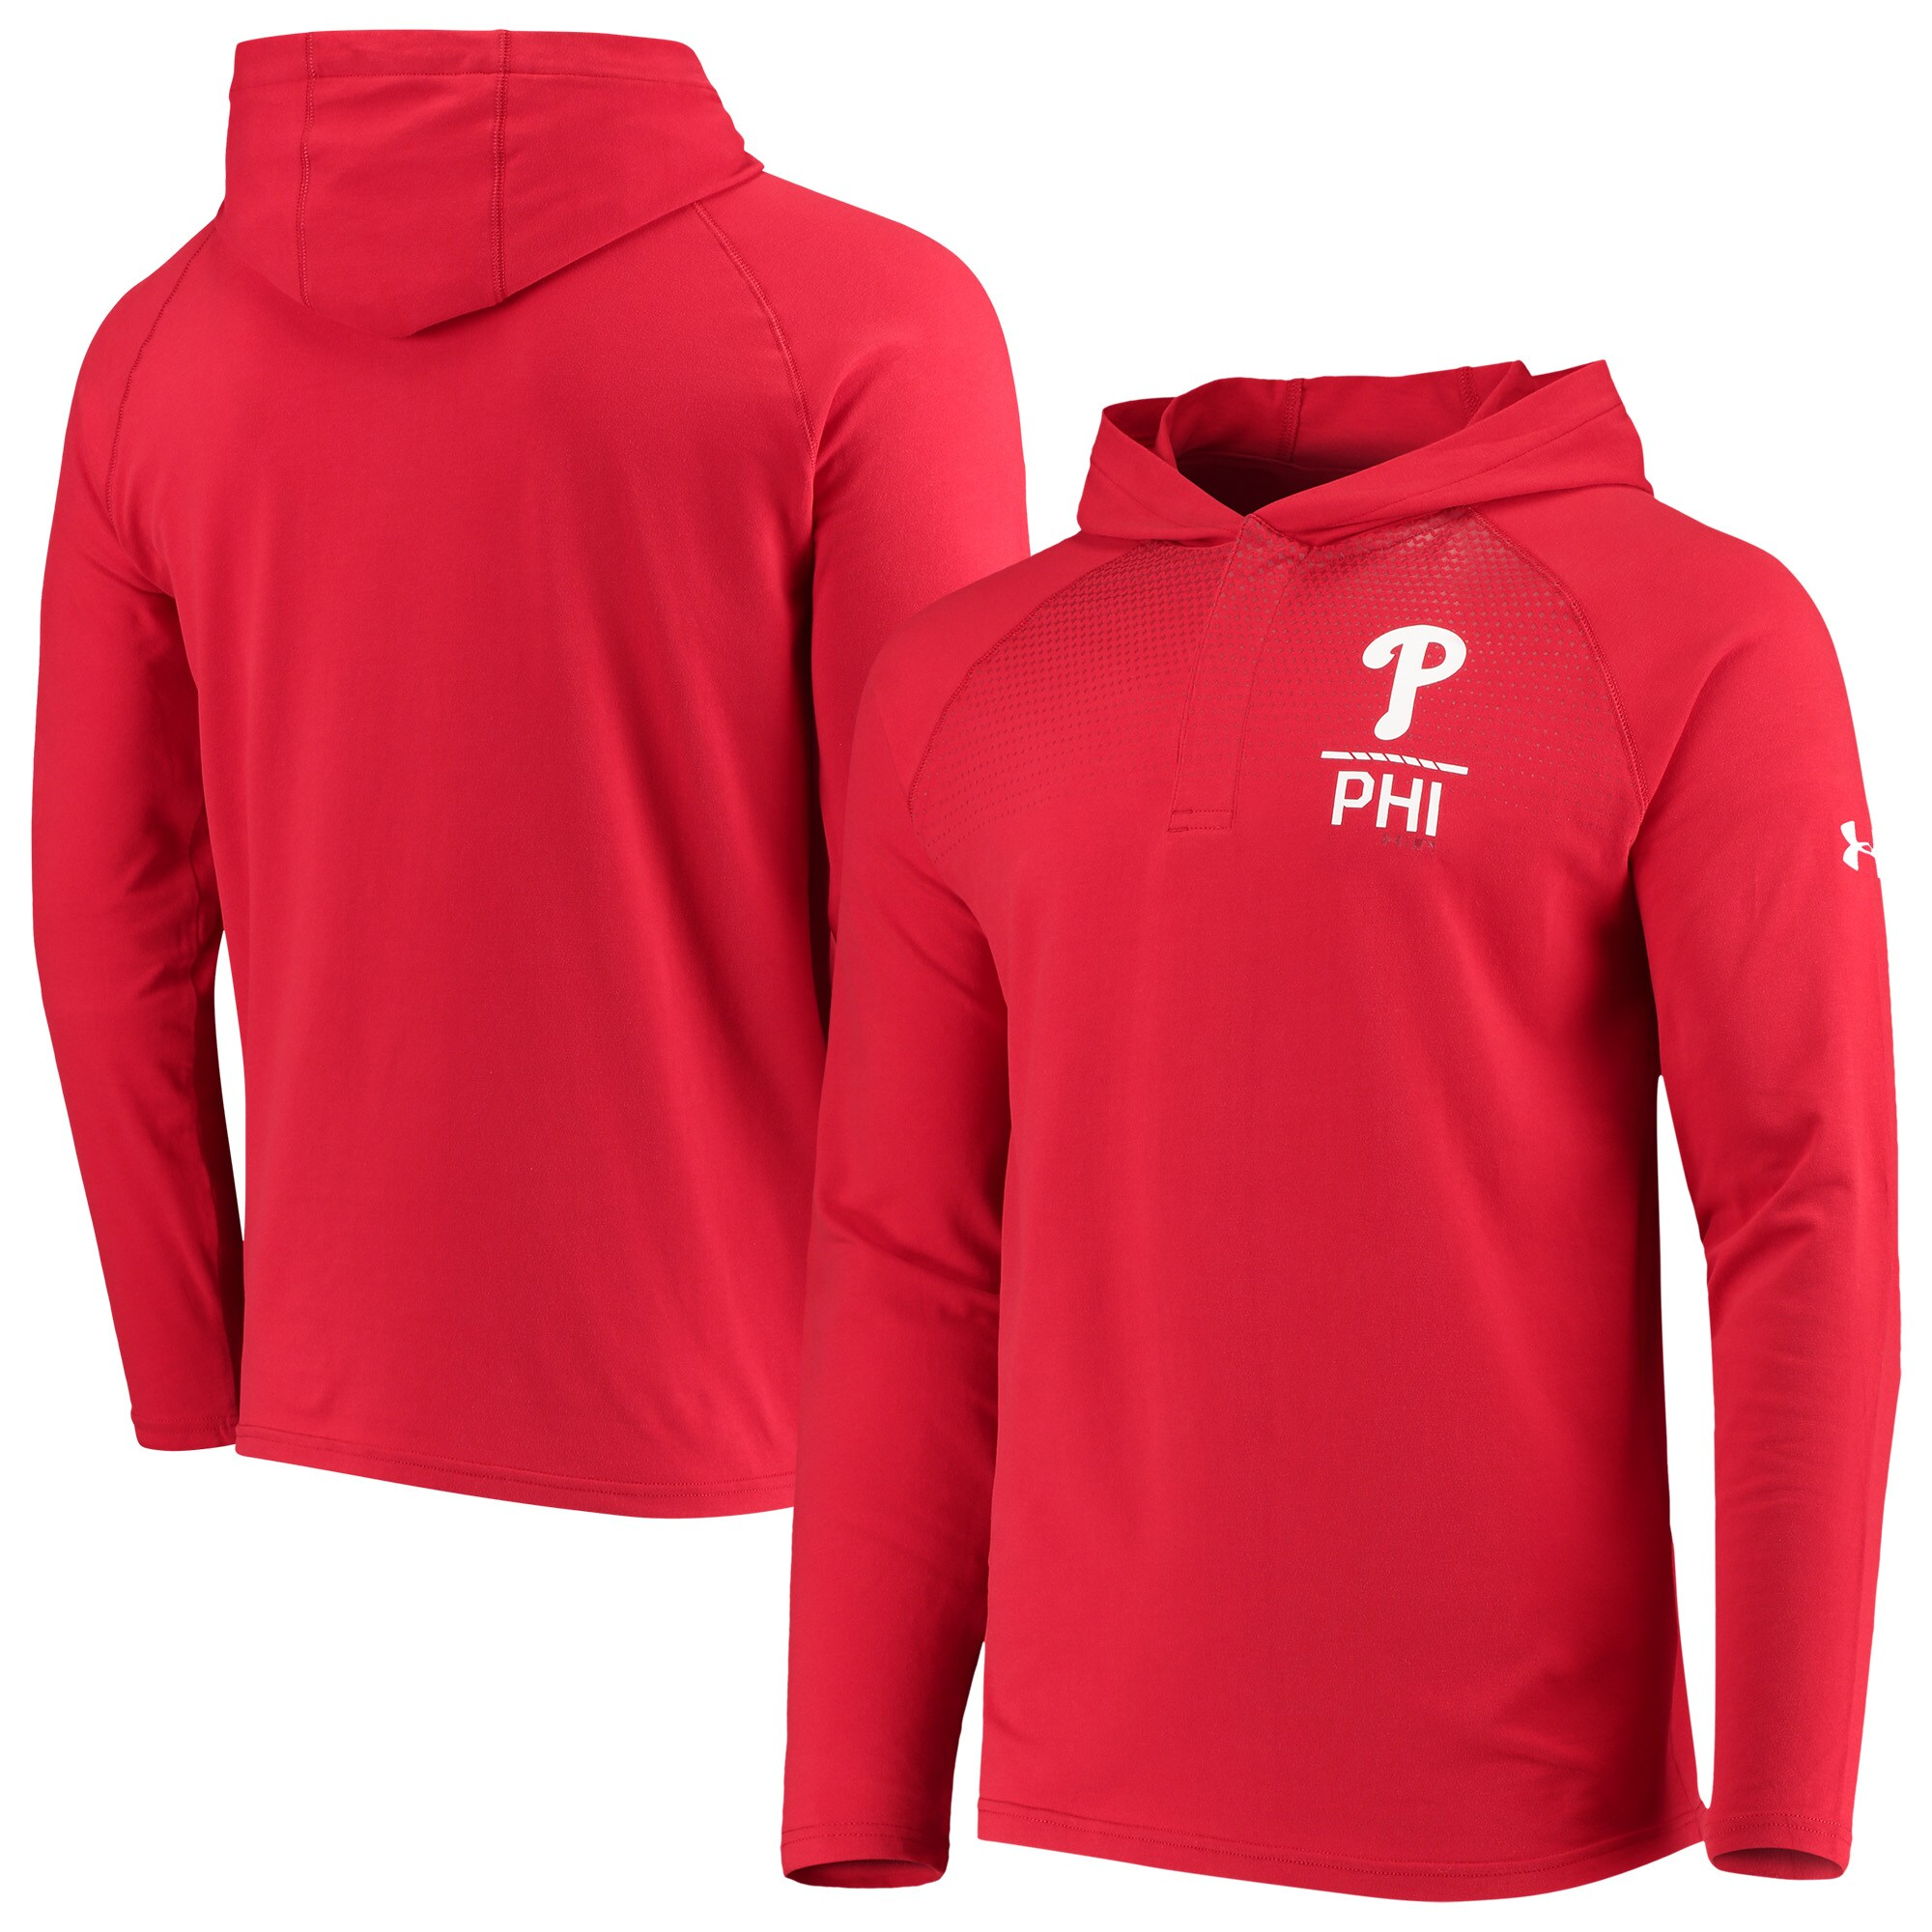 Philadelphia Phillies Under Armour Henley Performance Raglan Tri-Blend Pullover Hoodie - Red